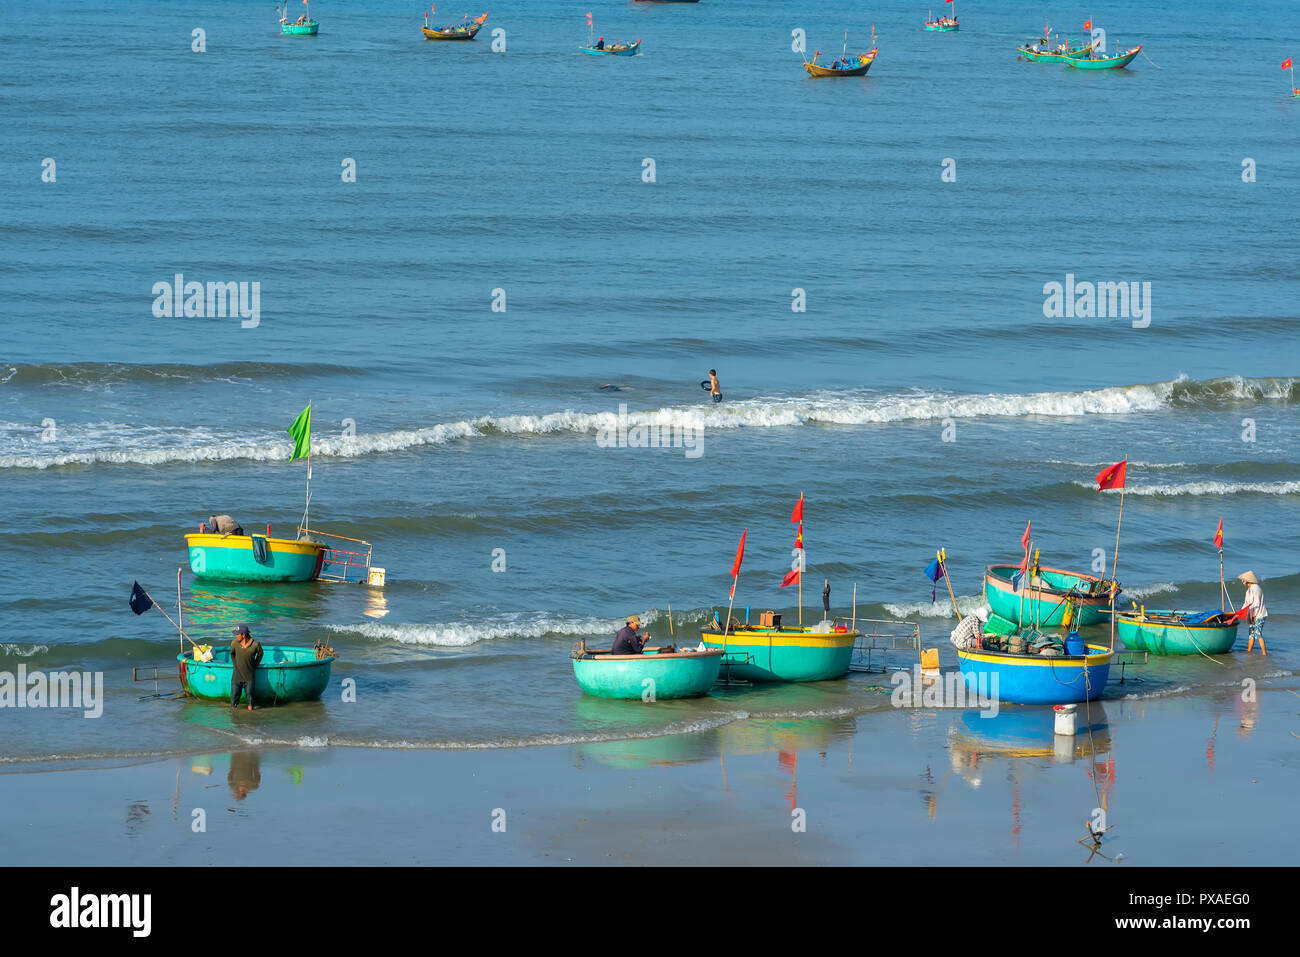 Pier fishing at Mui Ne beach in the morning when the fishermen prepare for a trip out to sea full of fish caught - Stock Image